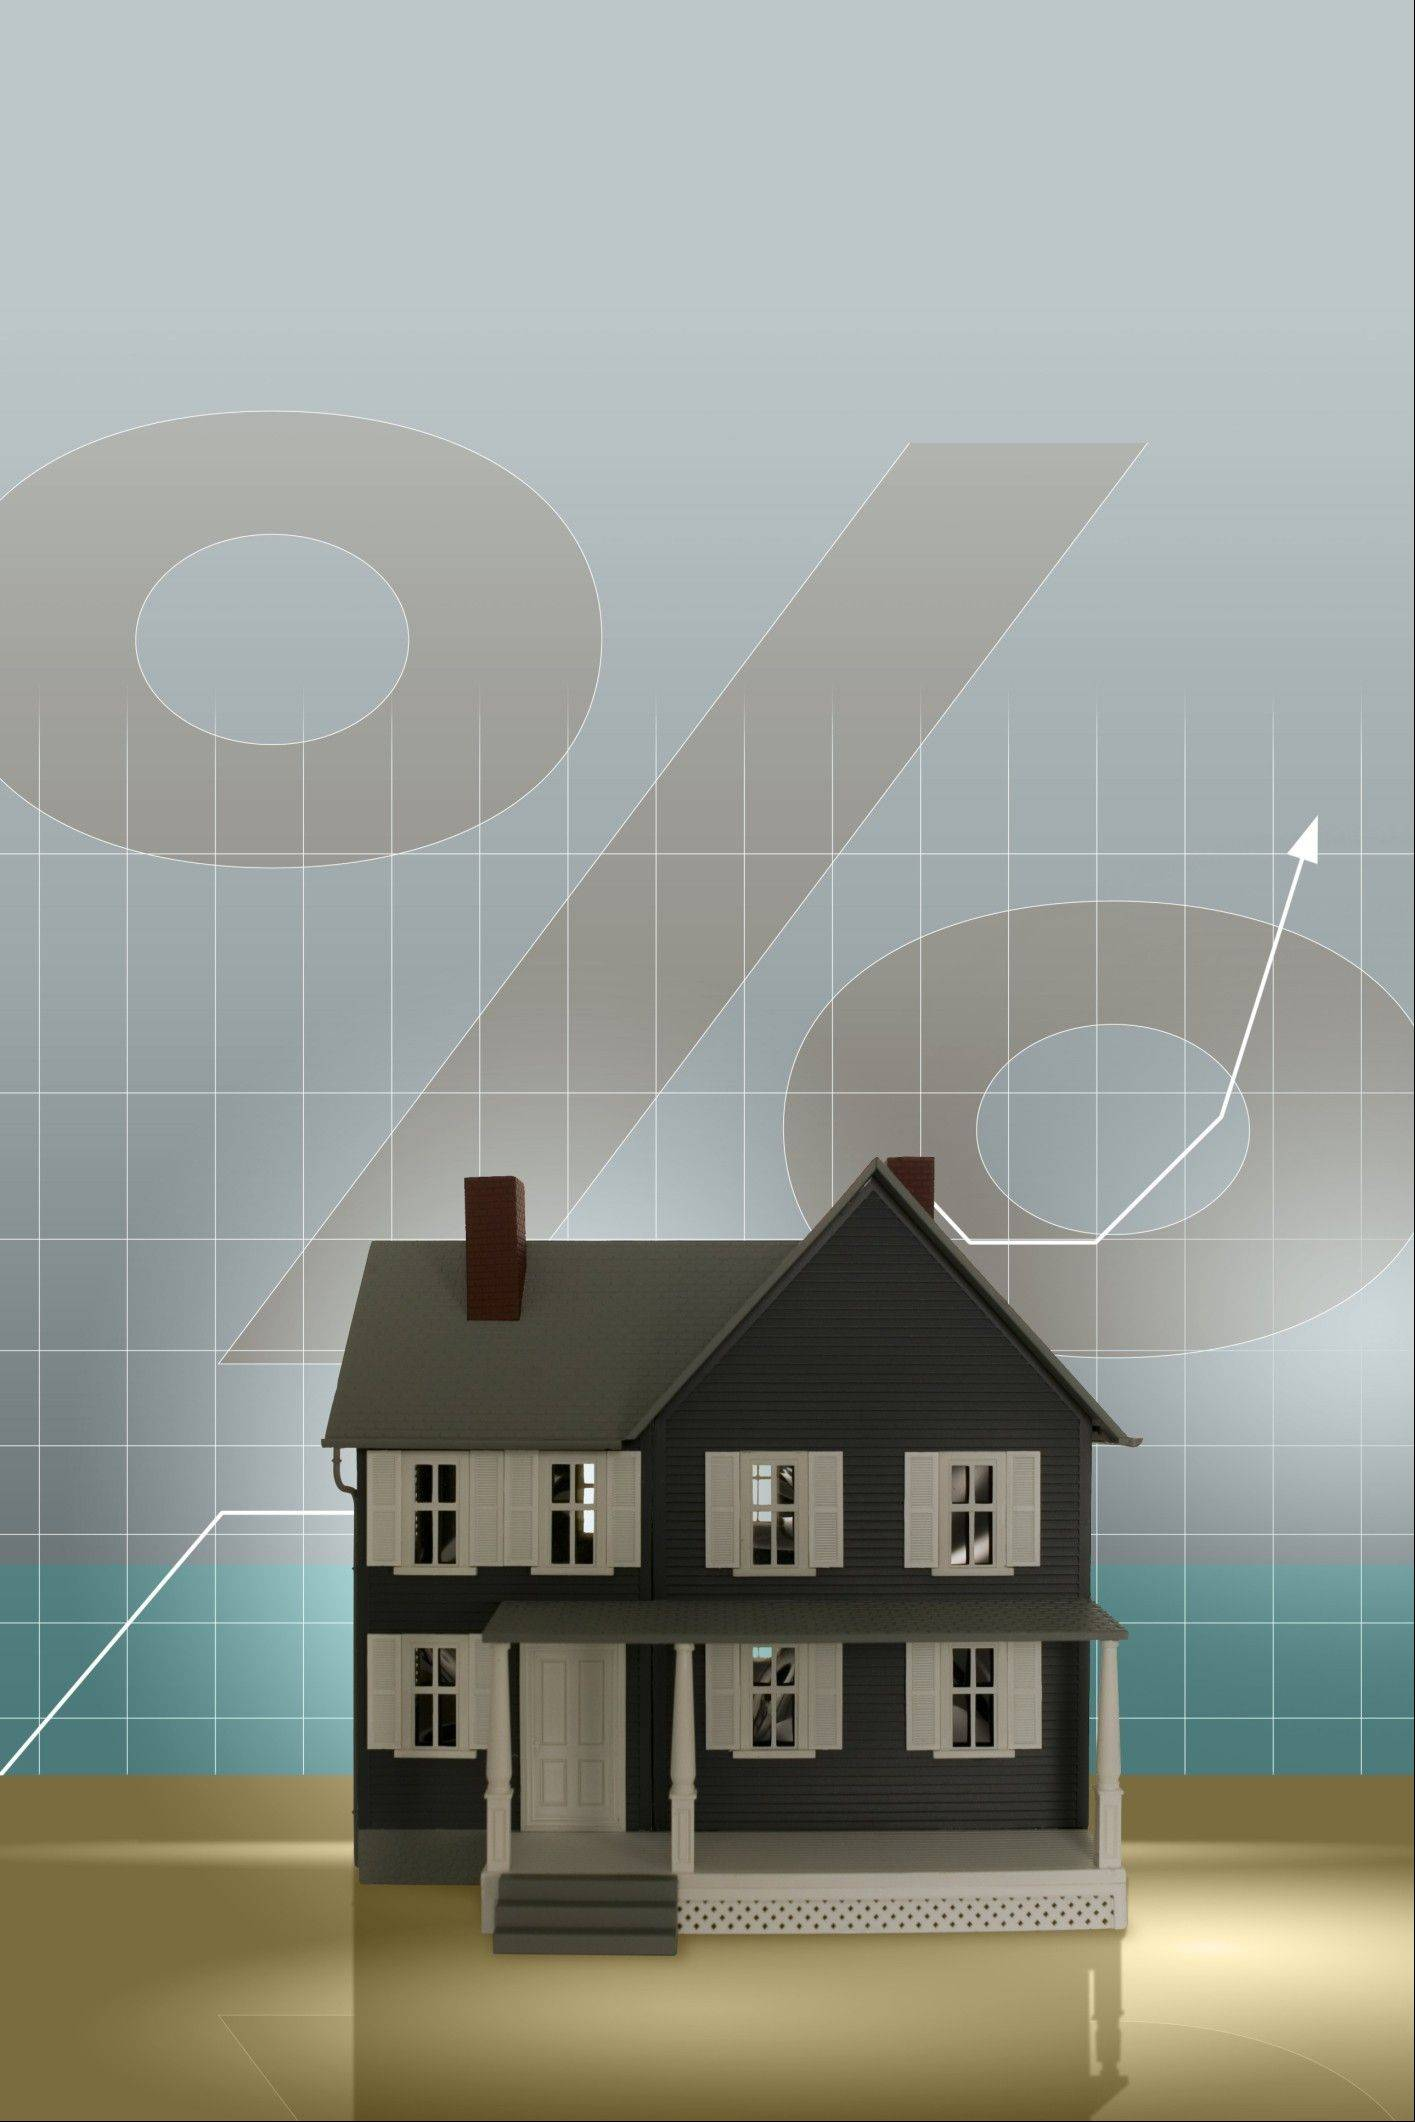 The majority of mortgages come with a fixed interest rate over the life of the loan. Rates have been hovering near record lows for the past year, which is why it's a good time to refinance or consider becoming a homeowner.